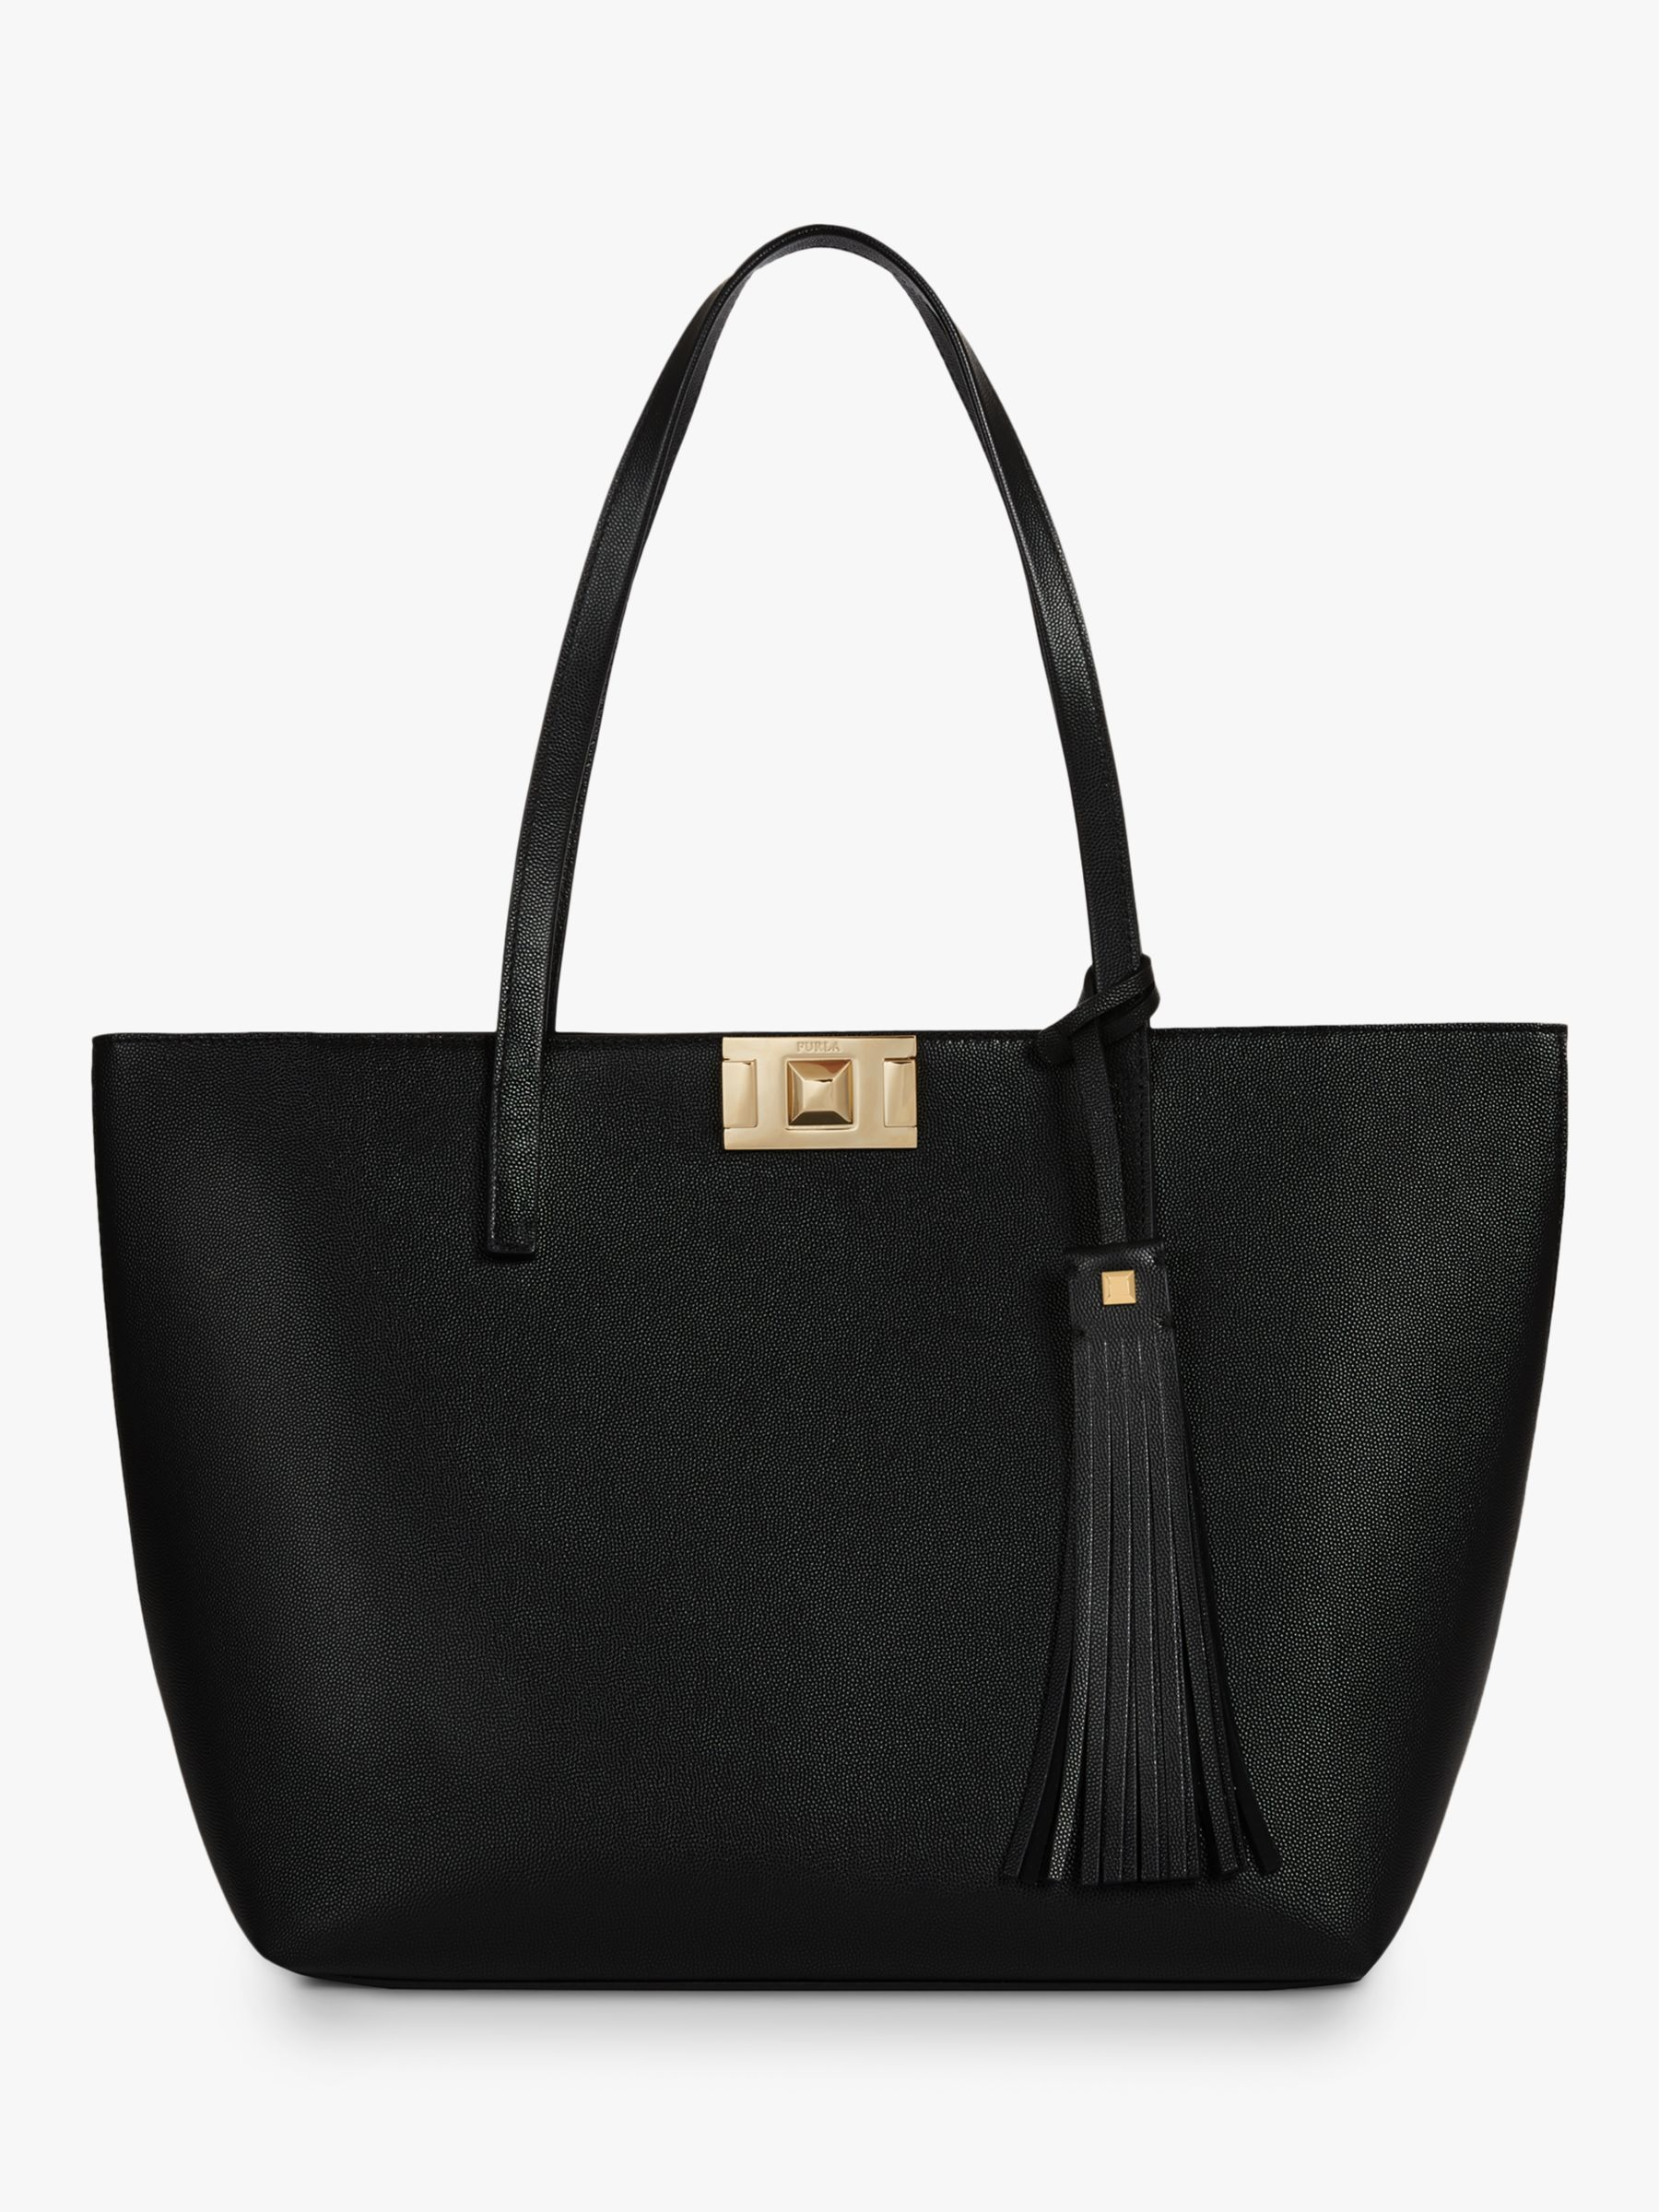 Furla Furla Mimi Leather Tote Bag